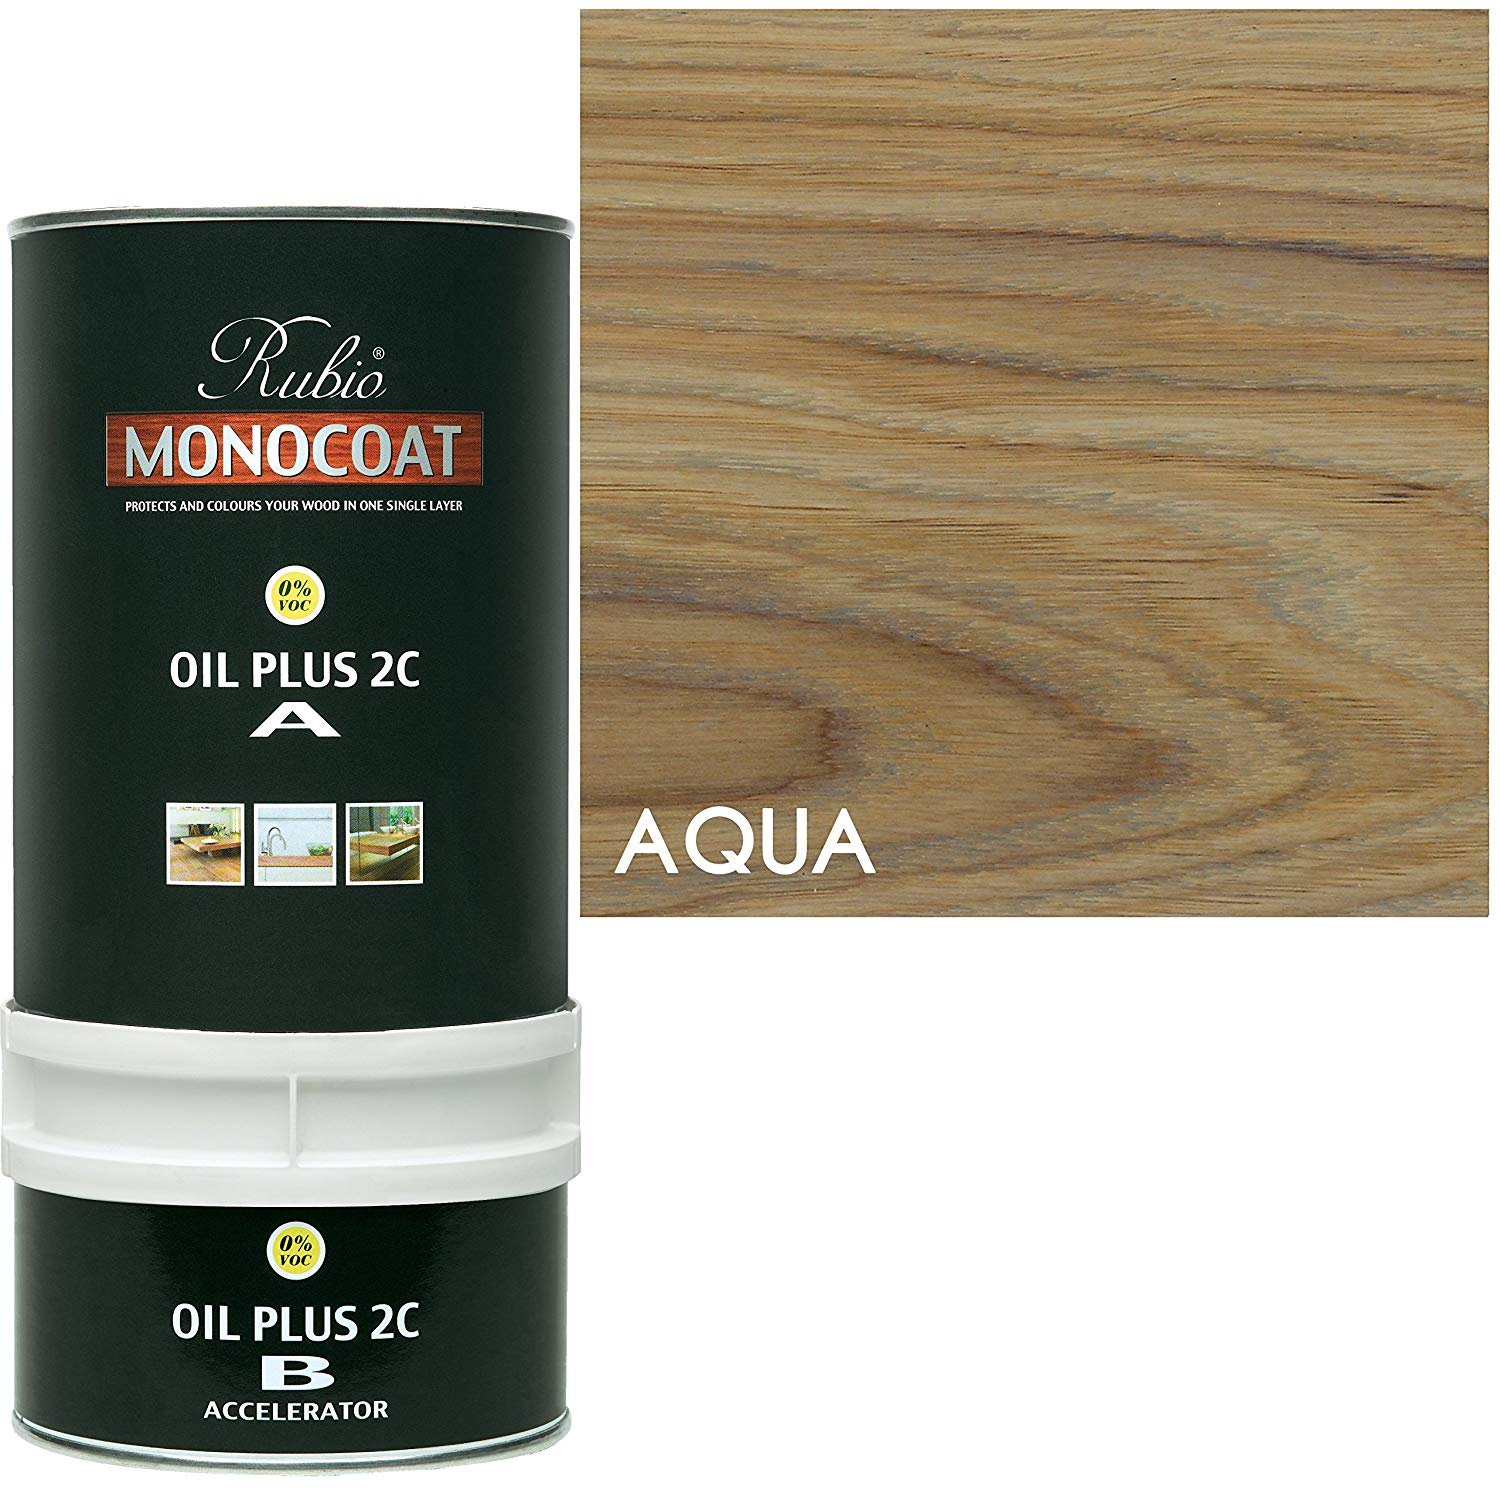 Rubio Monocoat Oil Plus 2C - Aqua